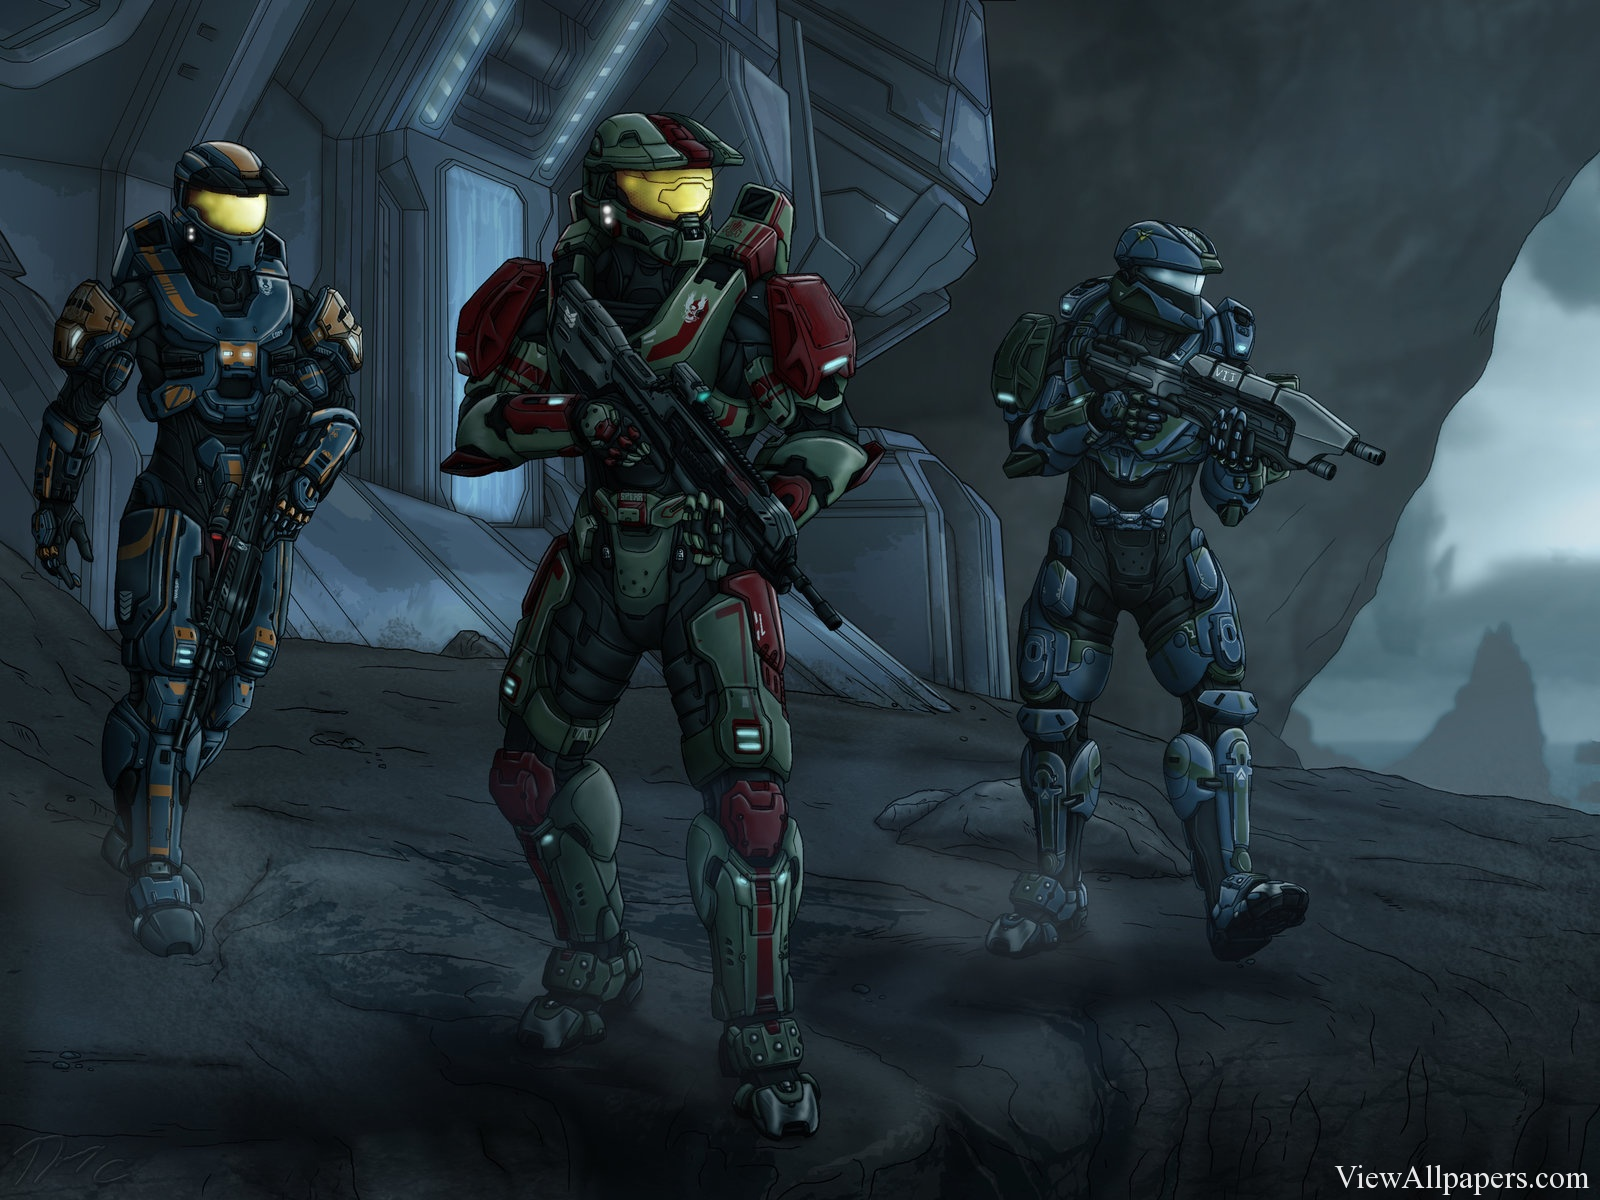 2015 Halo 5 Guardians Photos High Resolution Wallpaper 2015 Halo 5 1600x1200